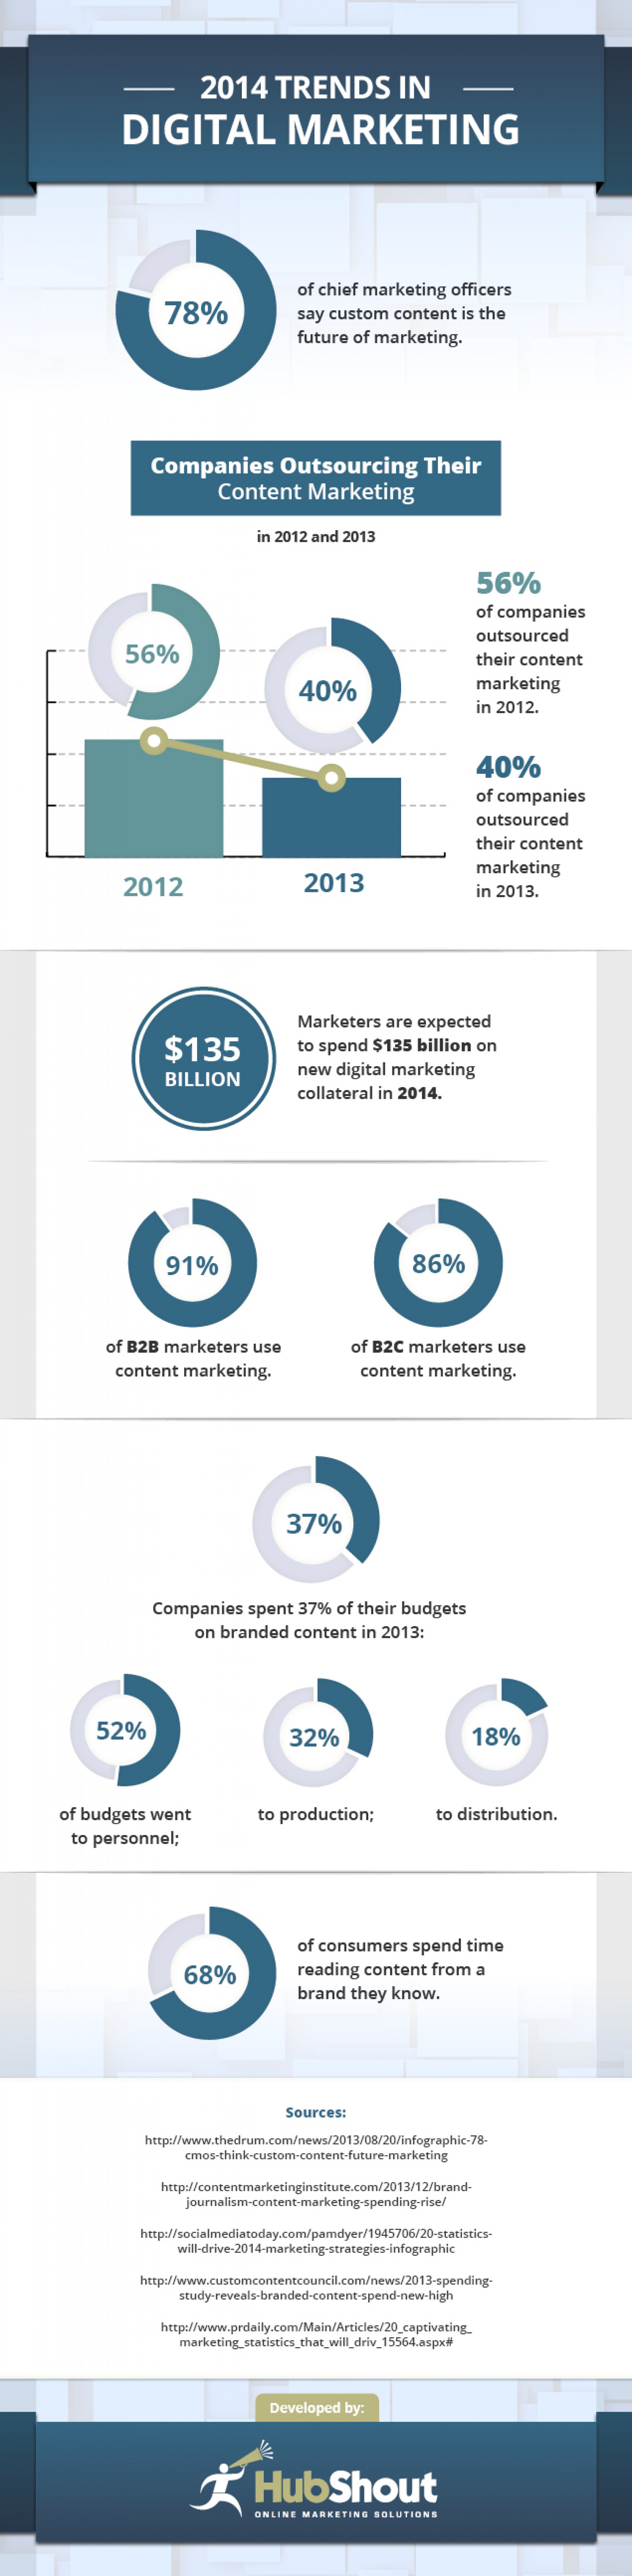 2014 Trends in Digital Marketing Infographic